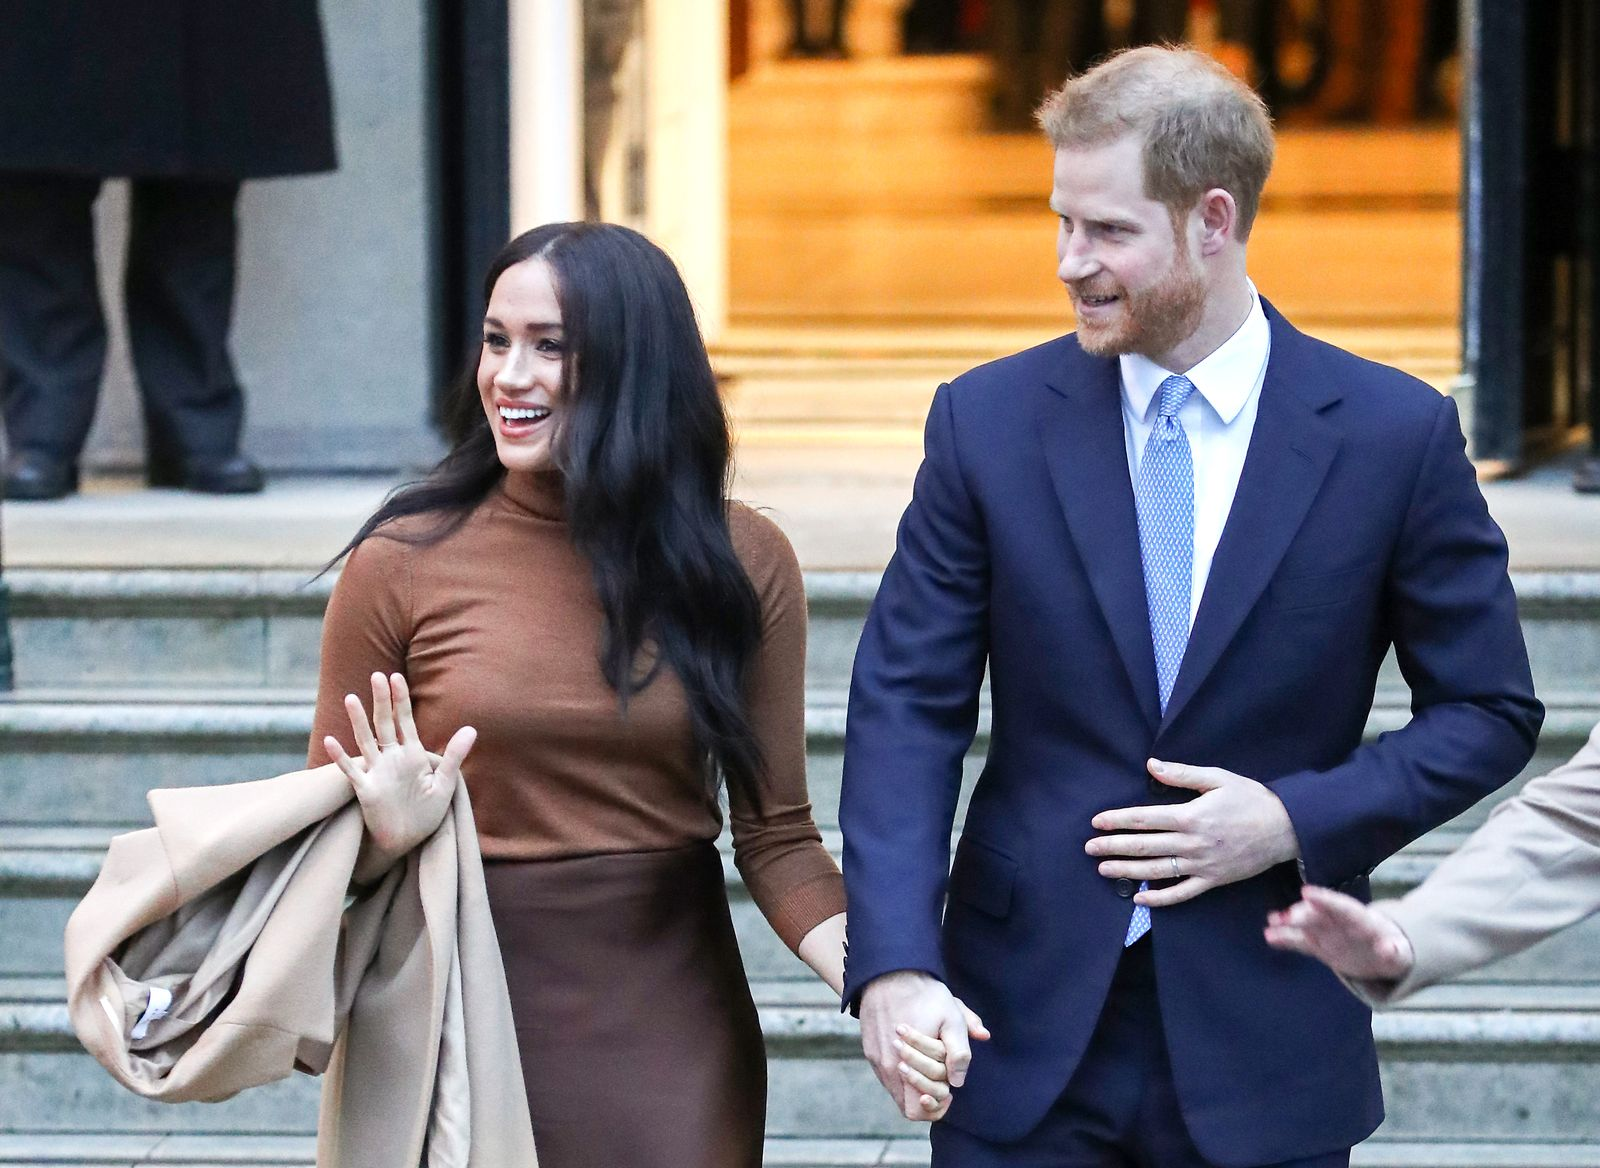 Meghan Markle and Prince Harry leave Canada House on January 07, 2020 in London, England. | Getty Images